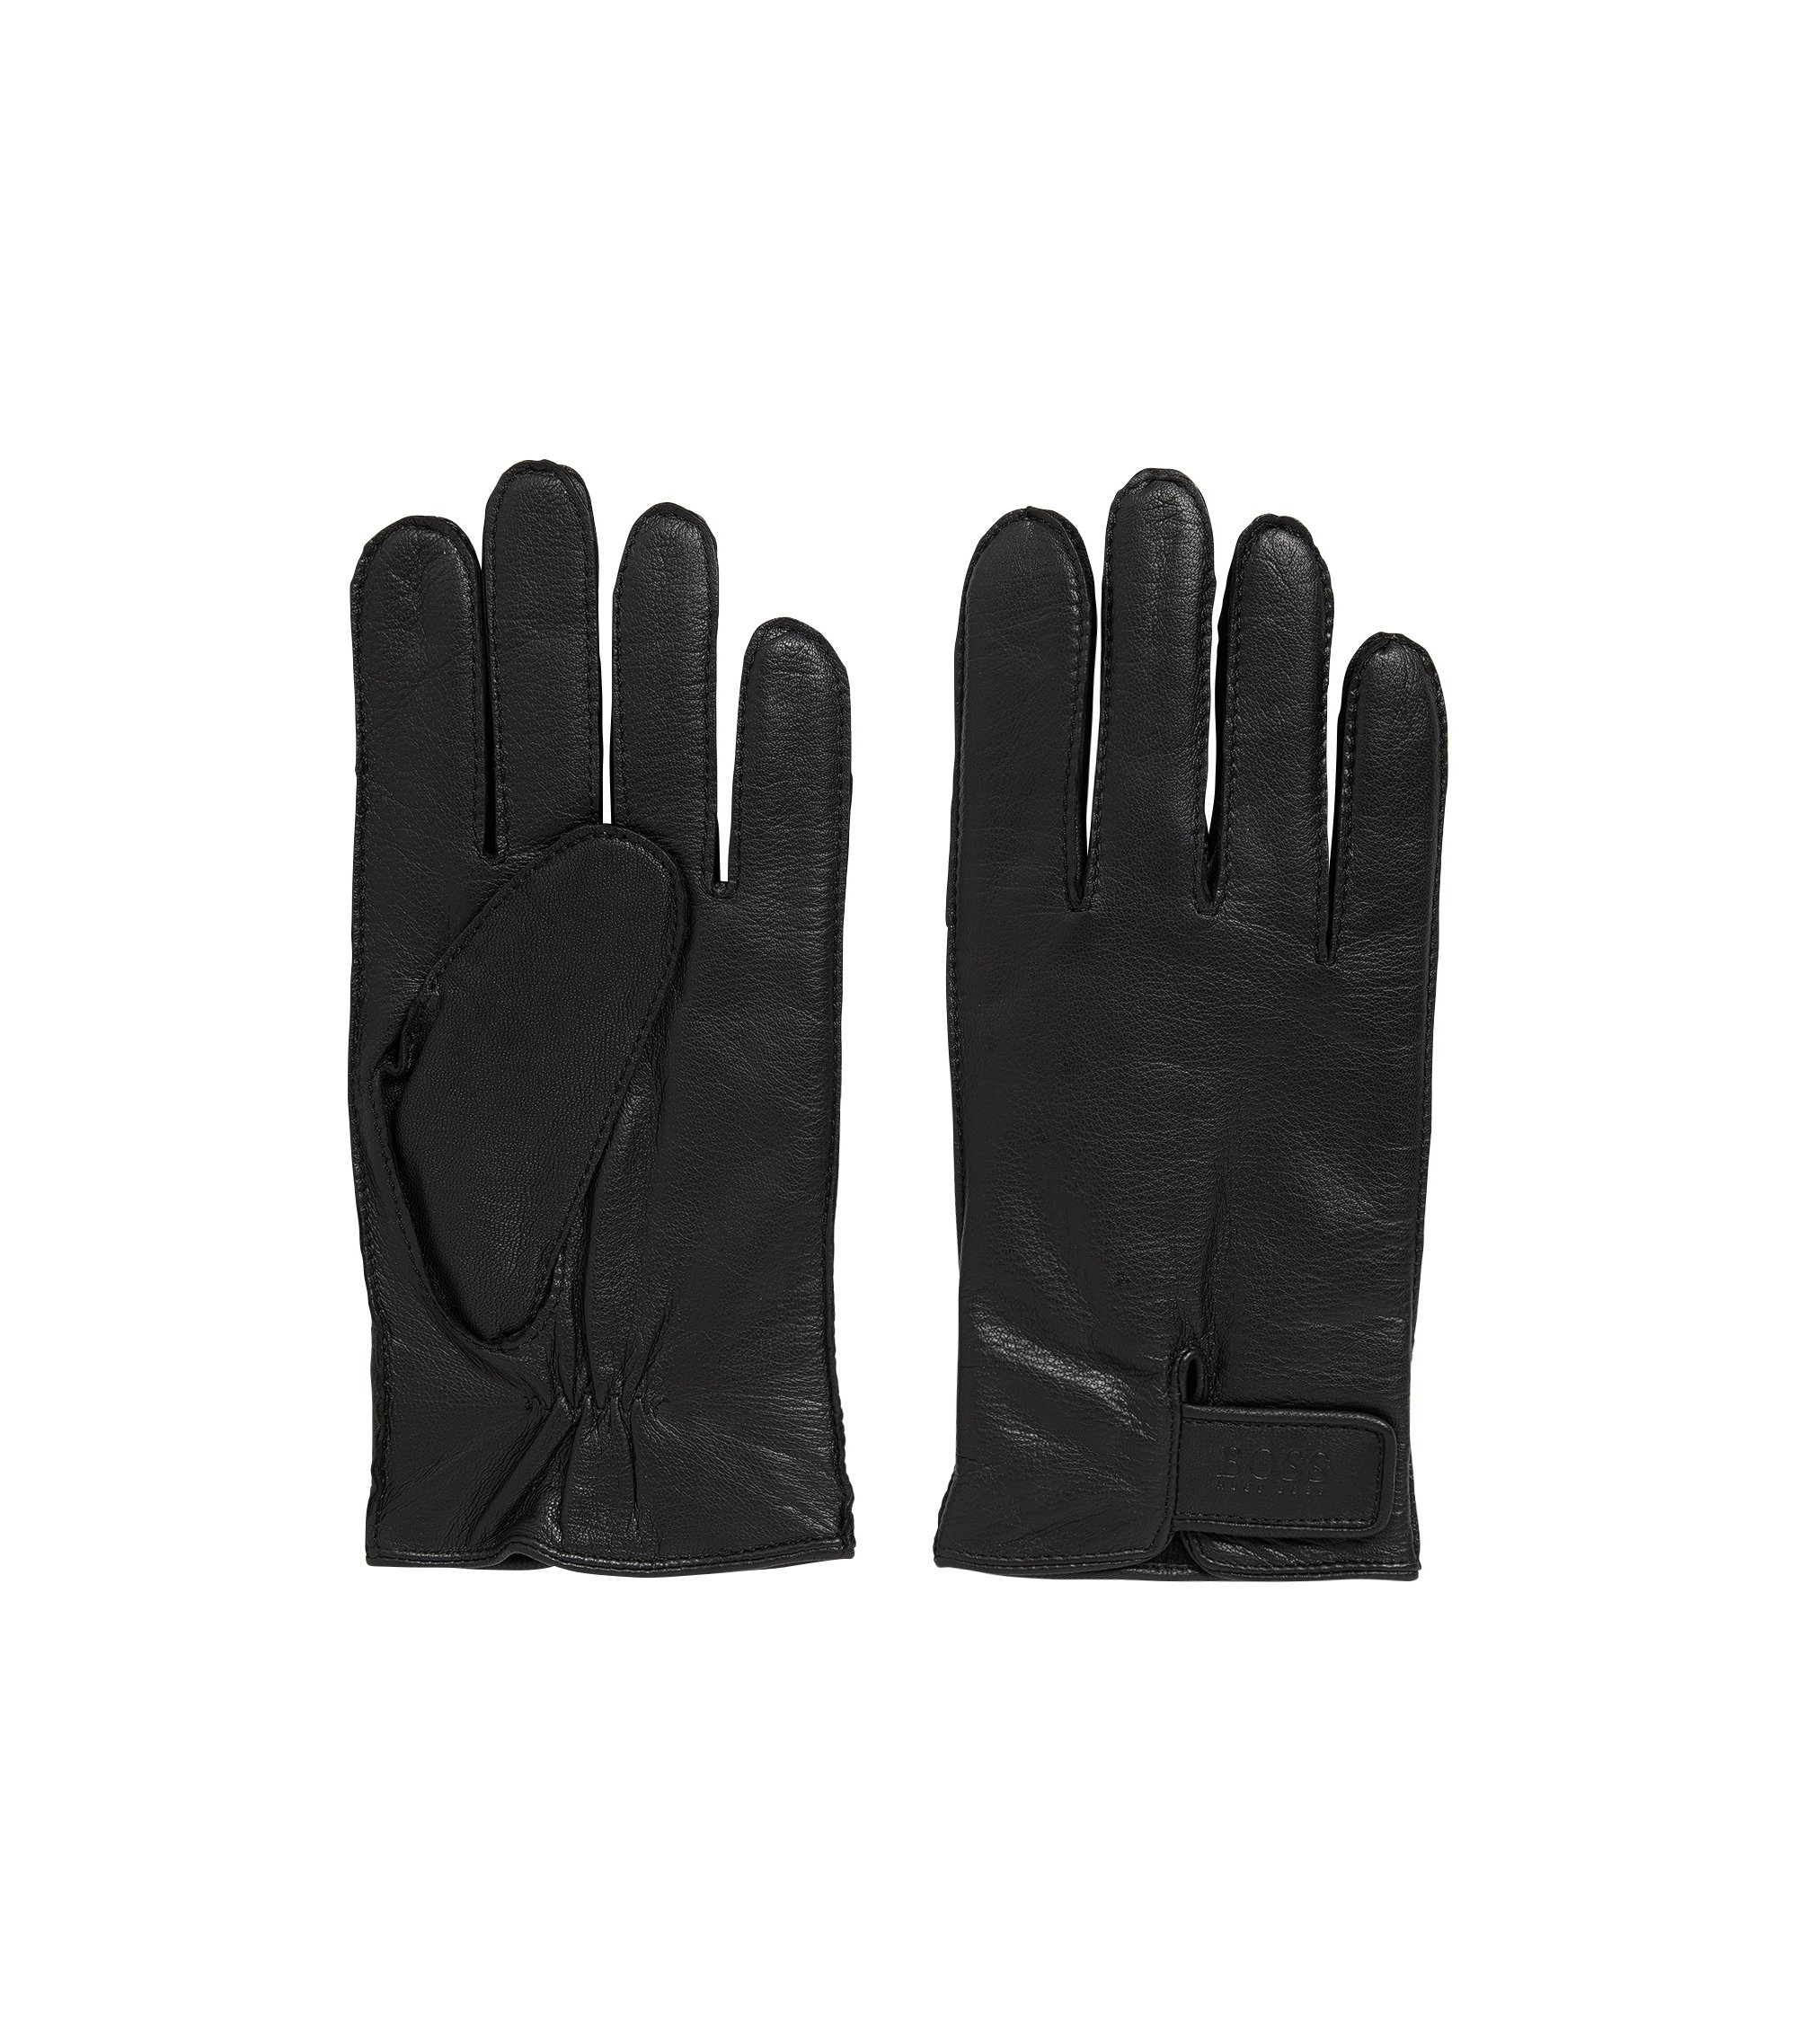 Nappa leather gloves with adjustable straps, Black